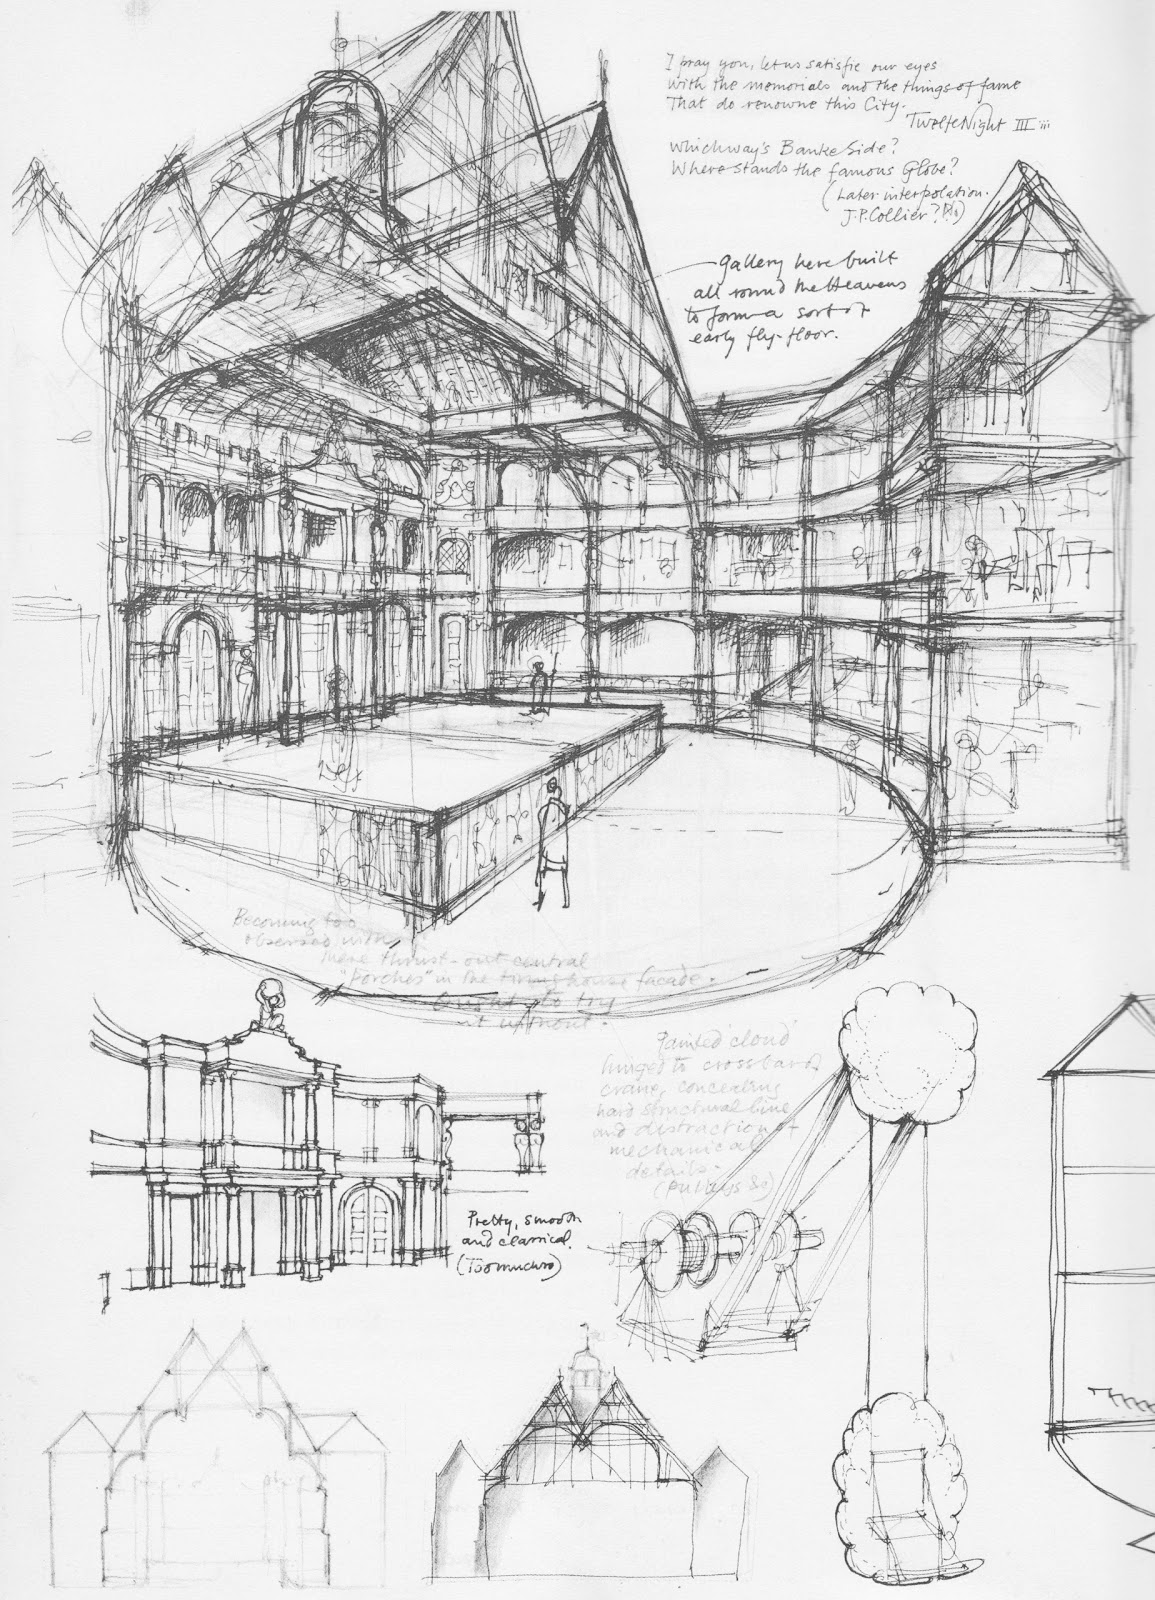 Set Design Images further 190456a together with Simple Globe Theater Drawings v7JnJ Xyiy6D4LNAjvpOp8 7CqM3i yA6Oyn8yPaFUXs additionally Mikuni Carb Parts Diagram Carburetor List also Globe Theater. on globe theatre diagram